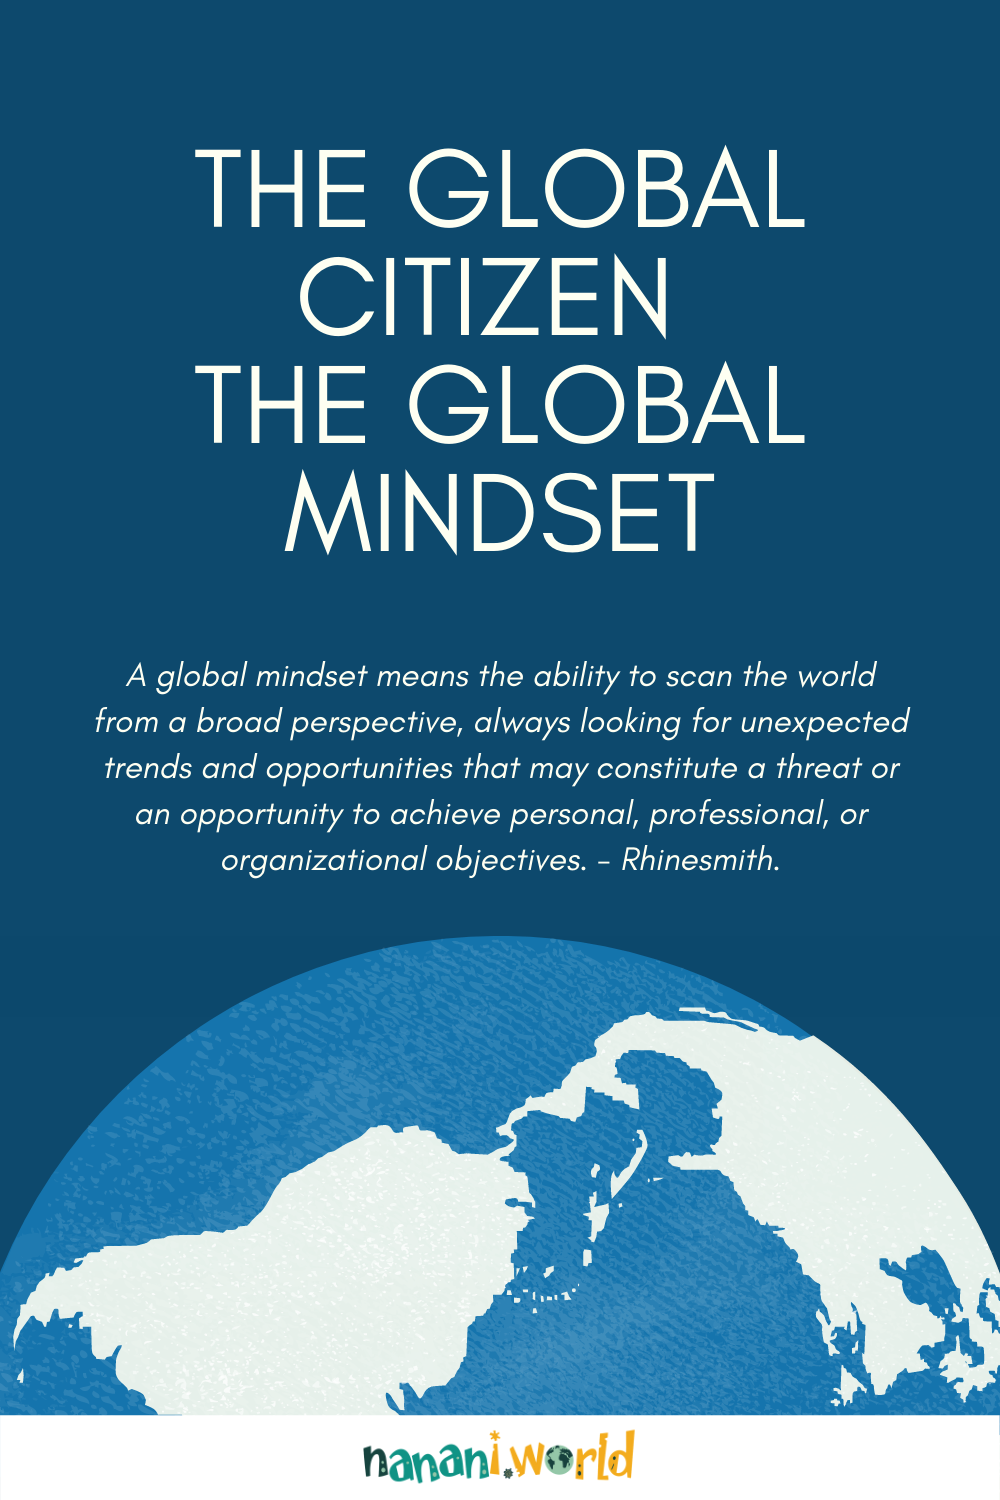 The Global Citizen the Global Mindset